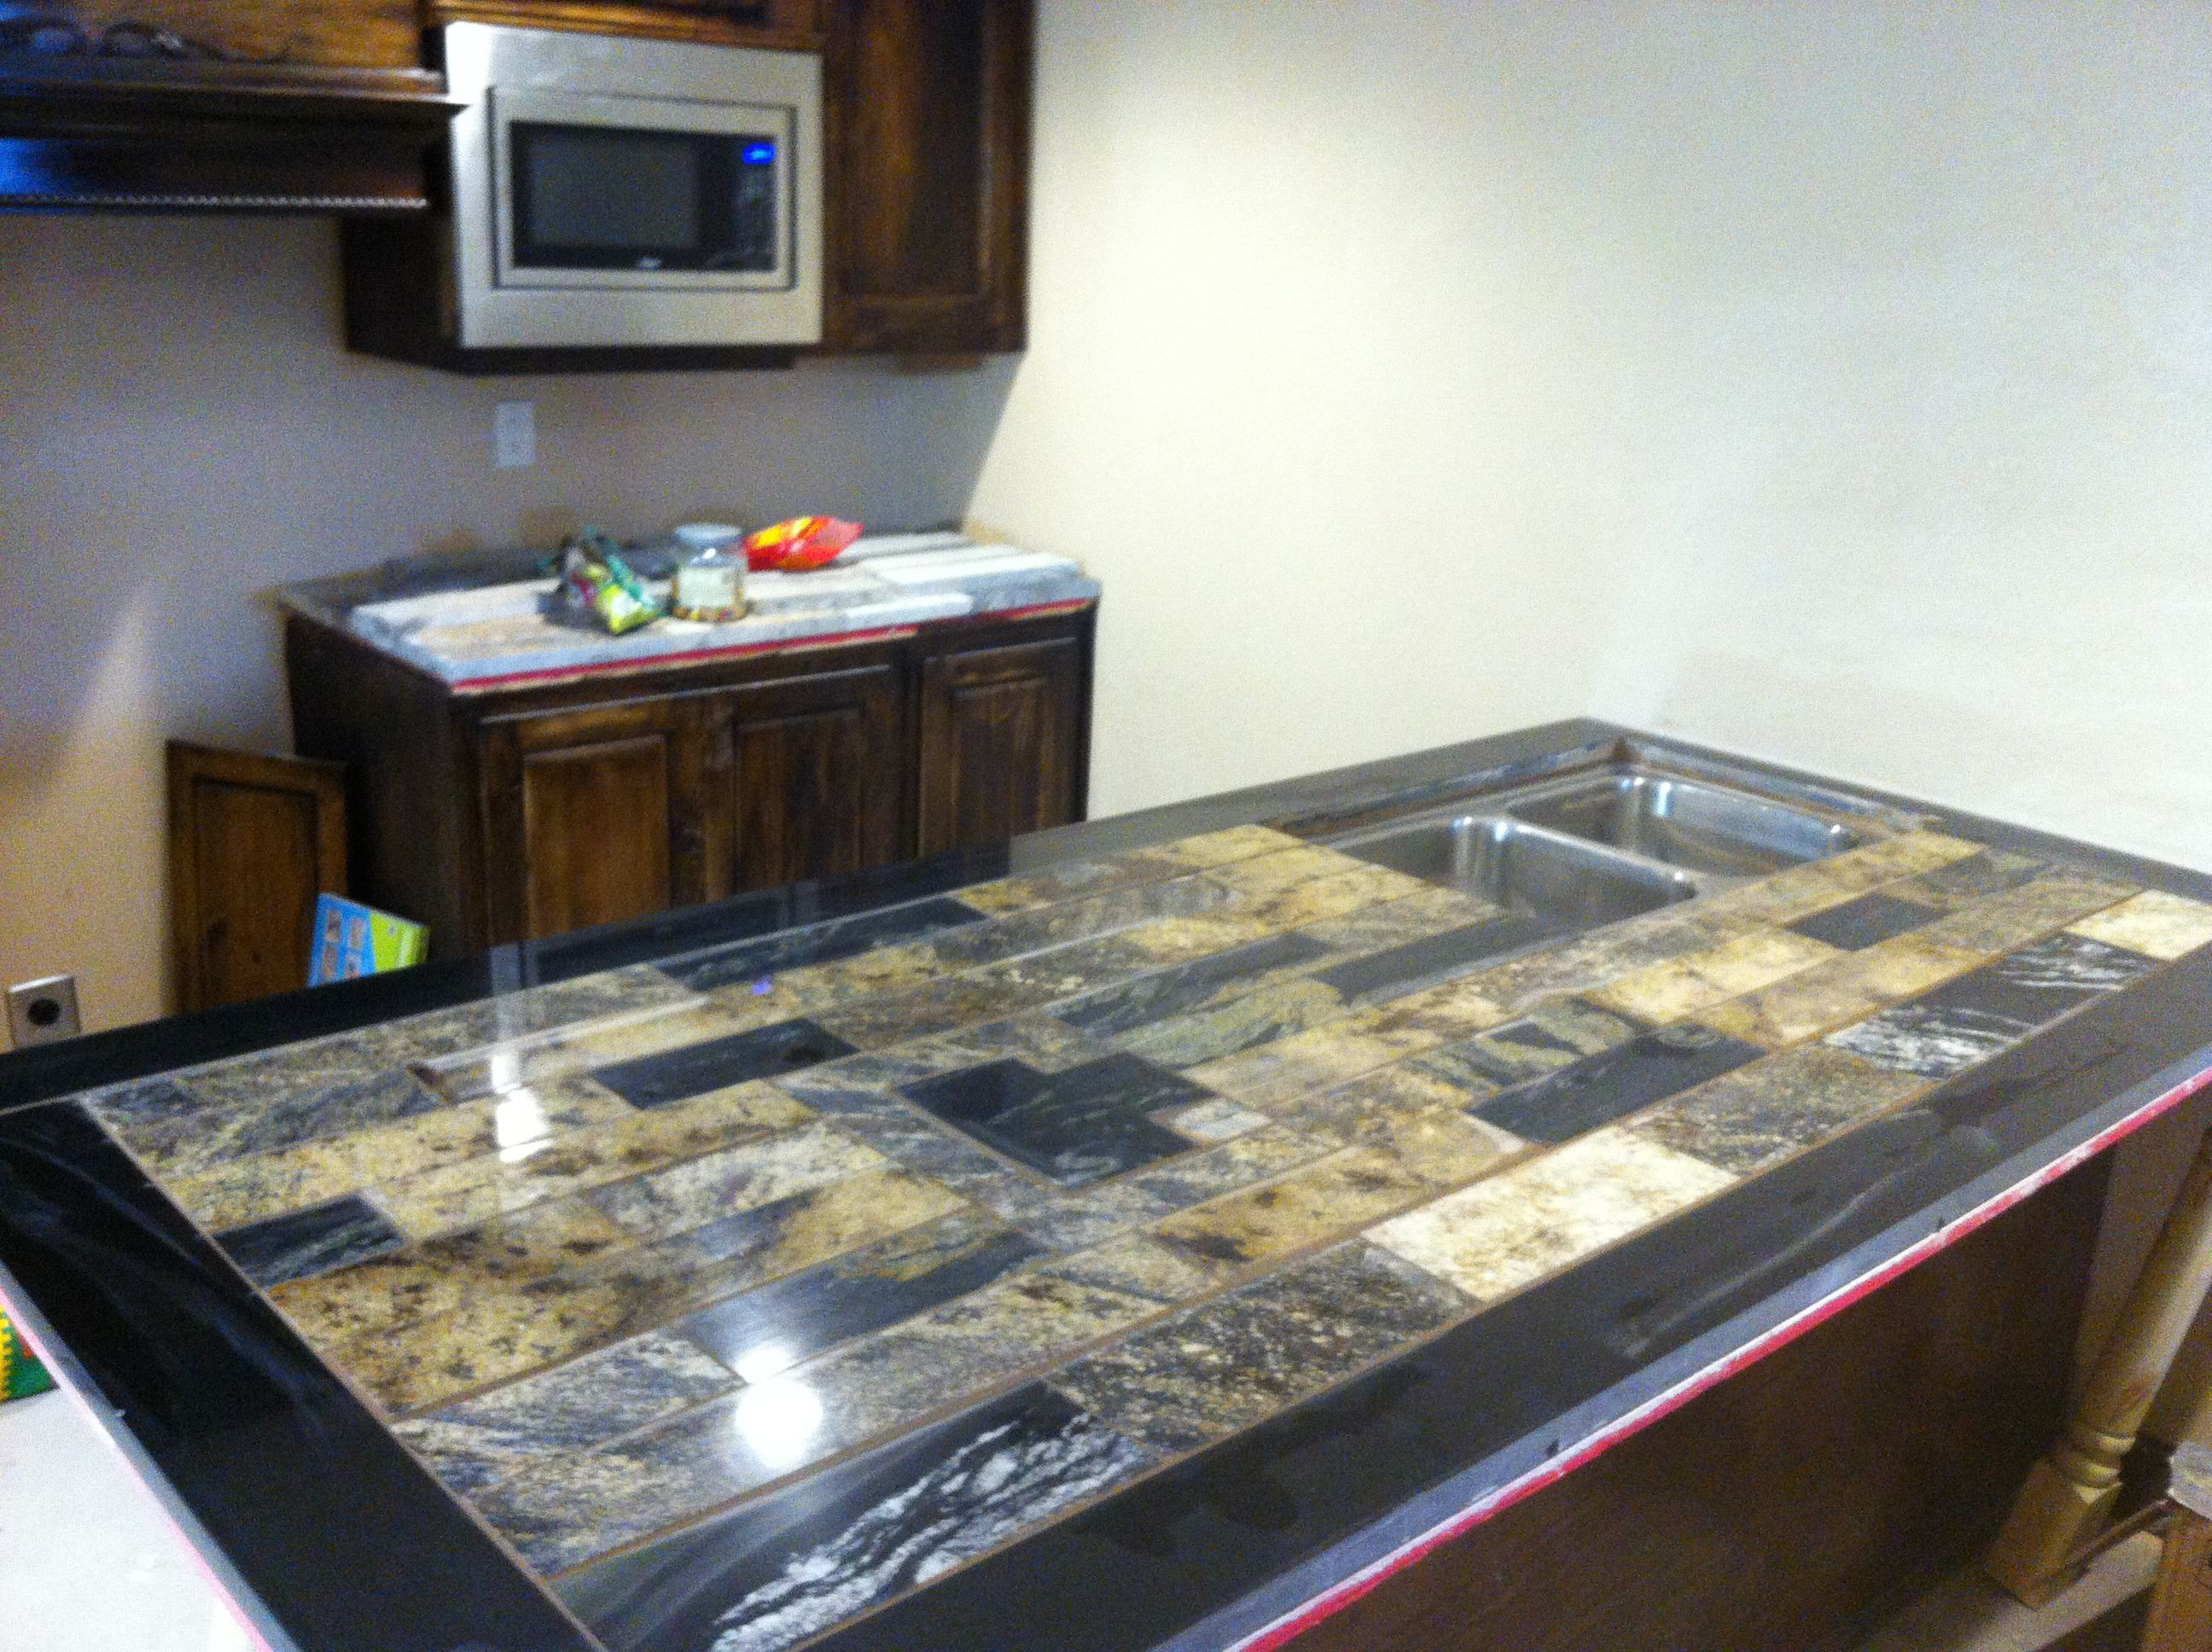 How To Restore Granite Countertops This Beautiful Remnant Granite Counter Top Was Made By One